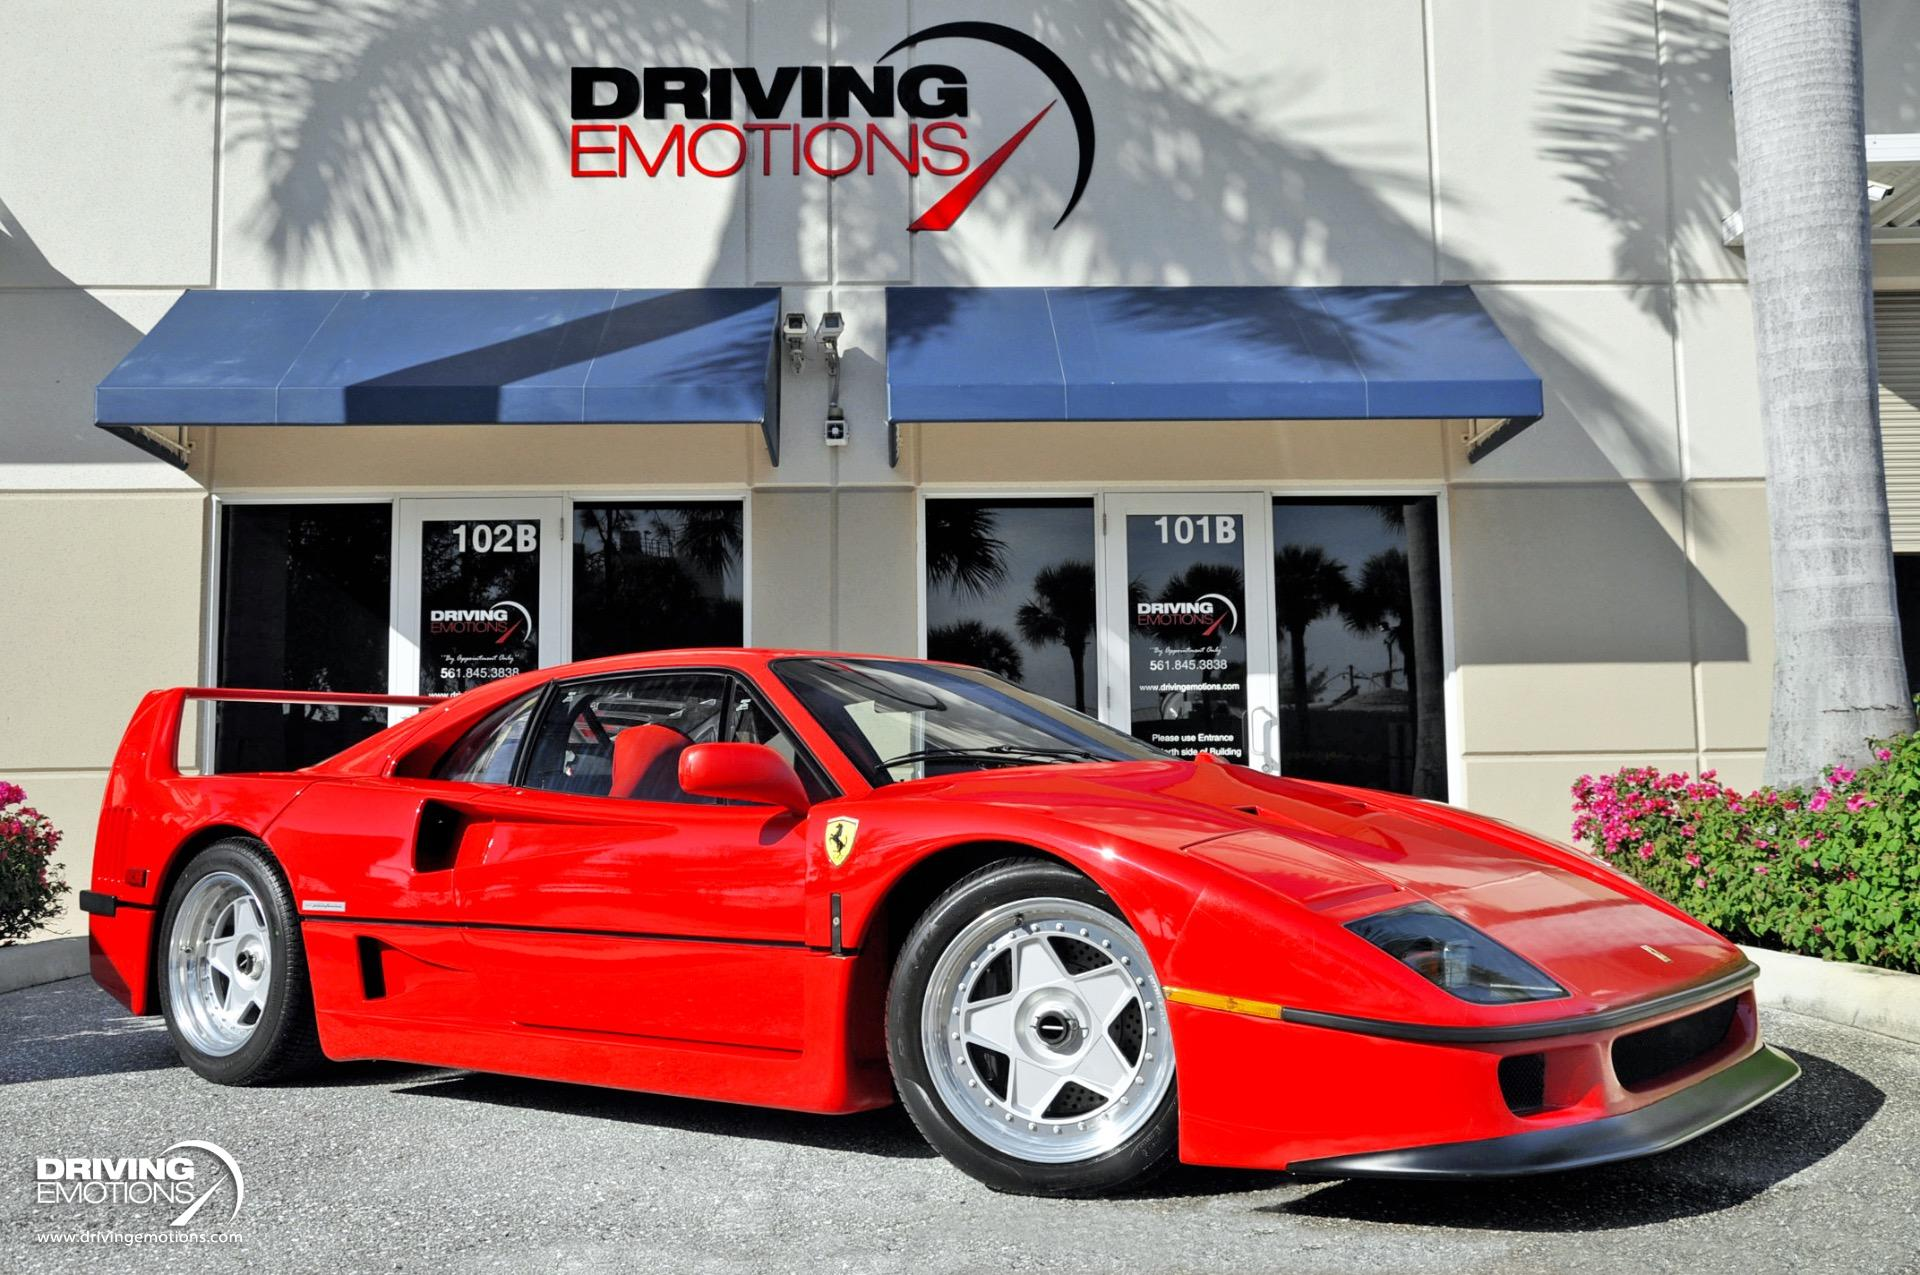 This Beautiful Ferrari F40 Is For Sale And Has Only 193 Miles On The Odometer News Supercars Net